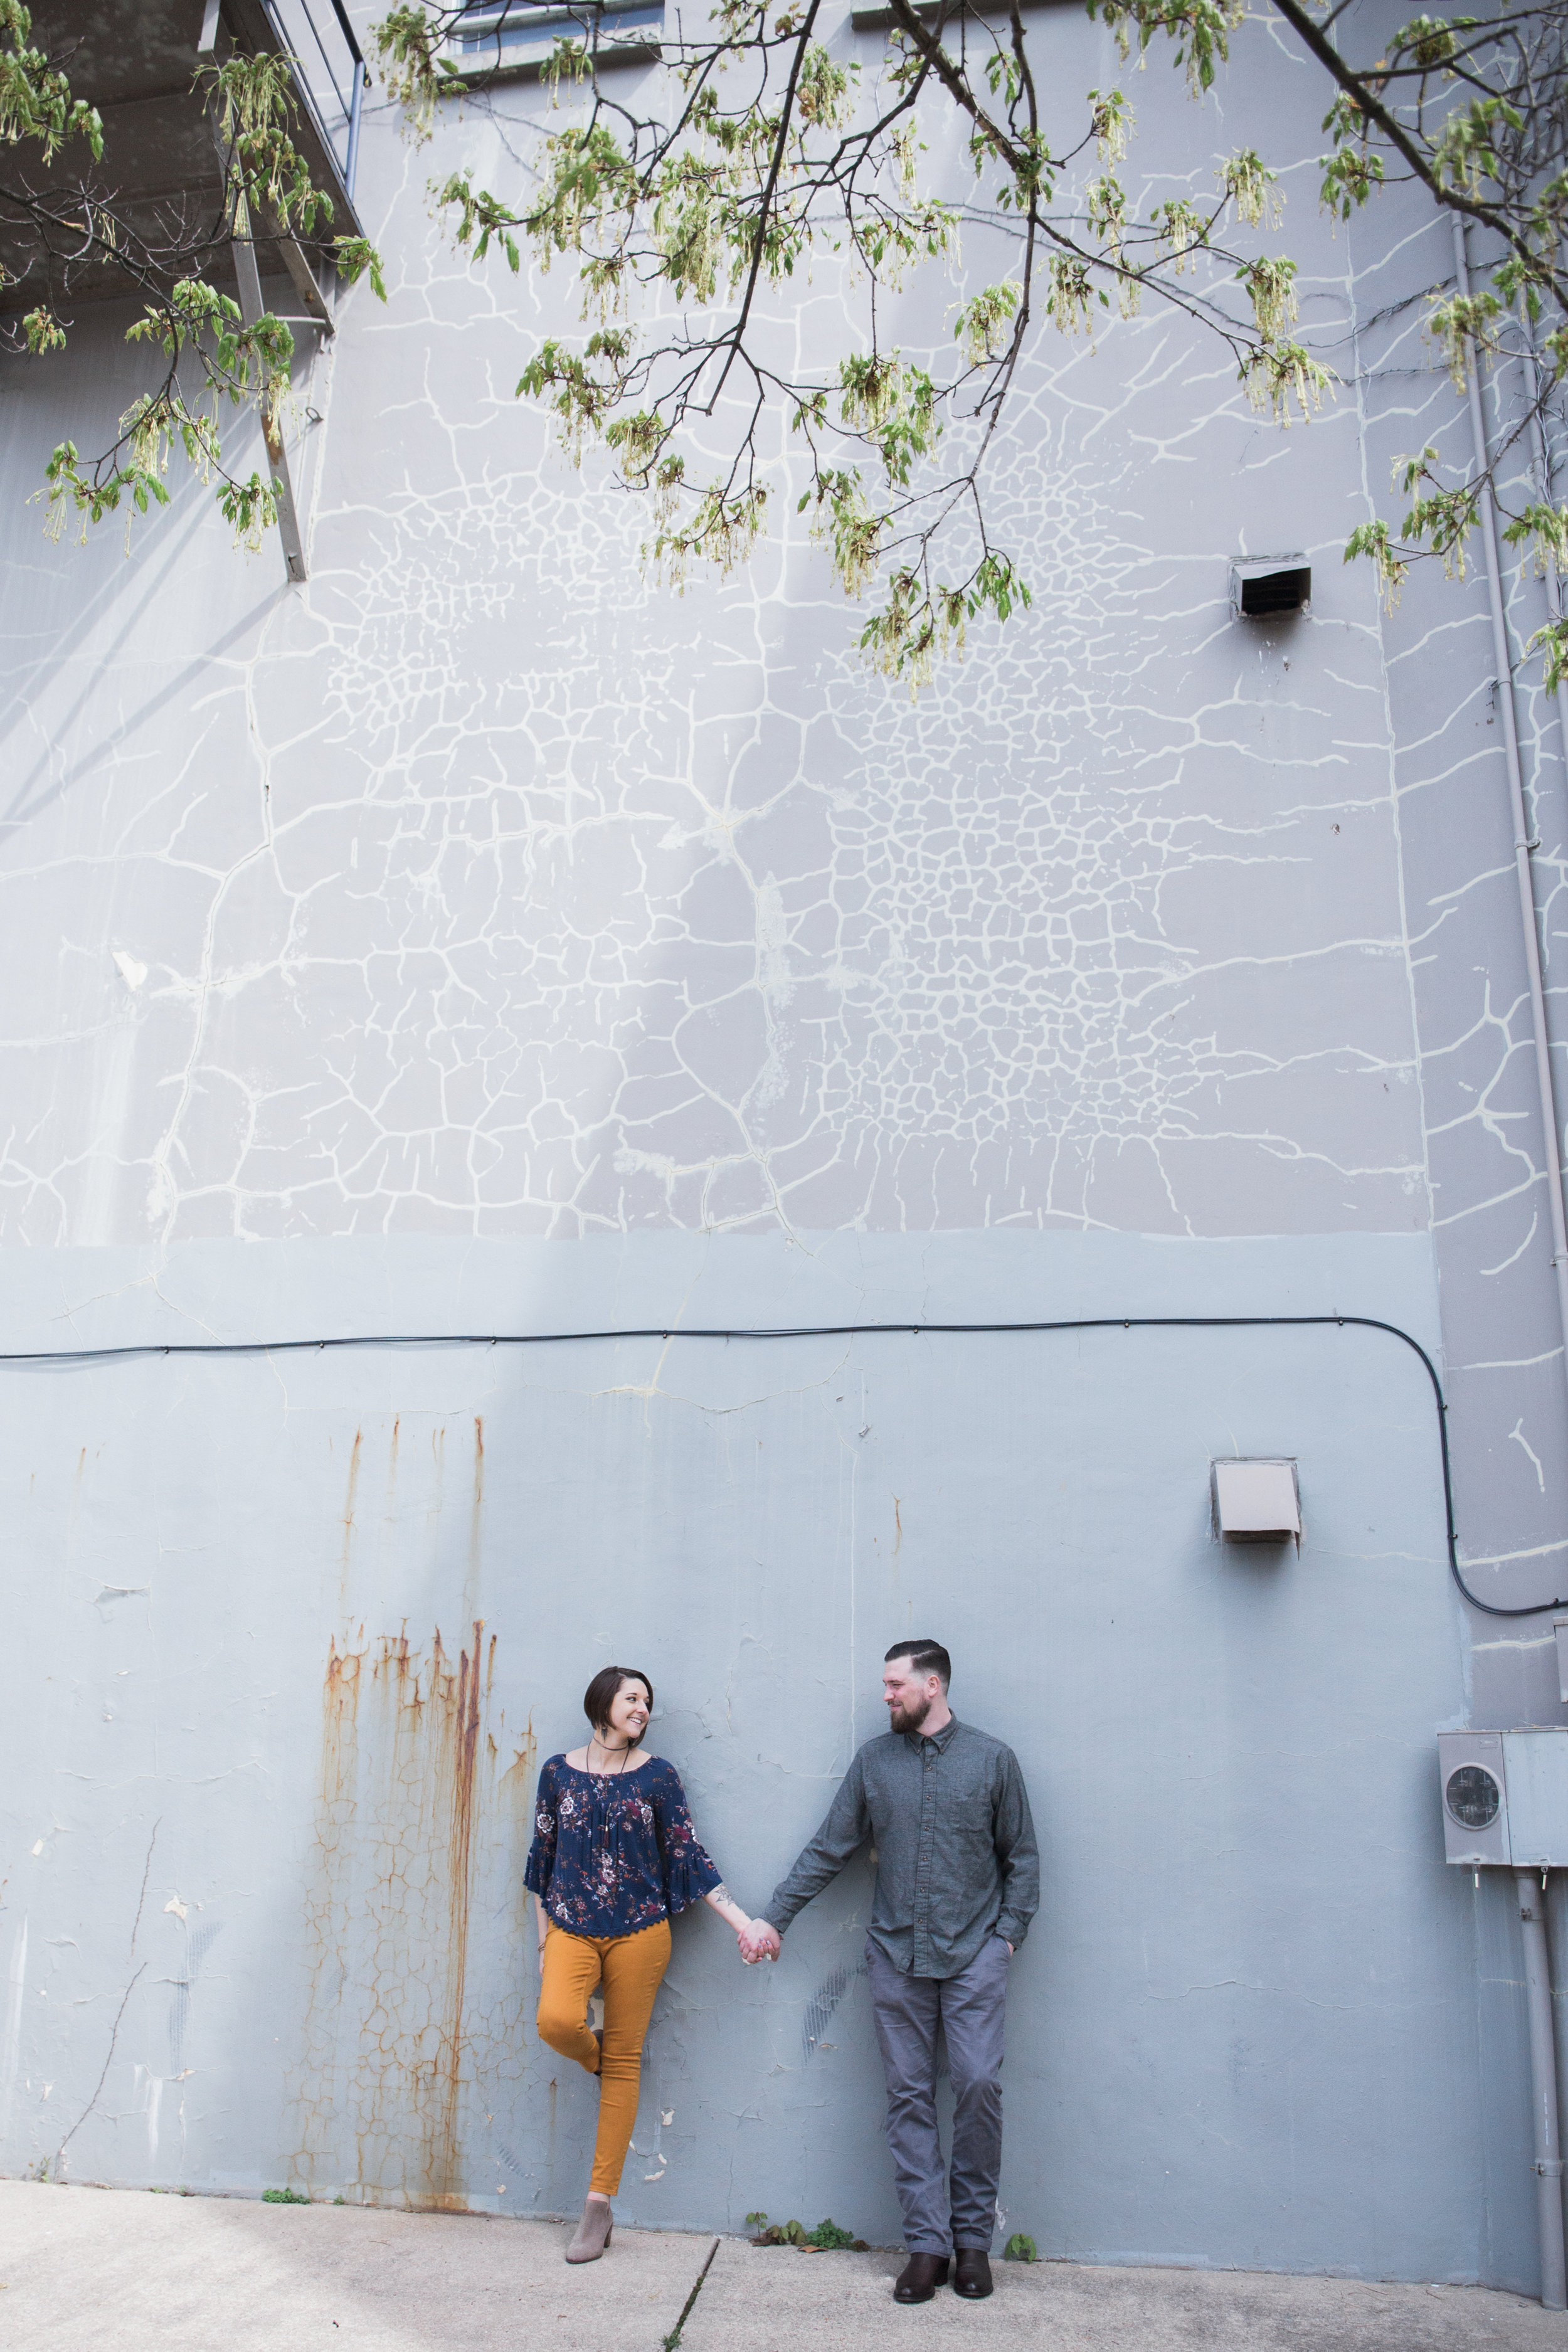 artistic-wall-engagement-session-downtown-allegan